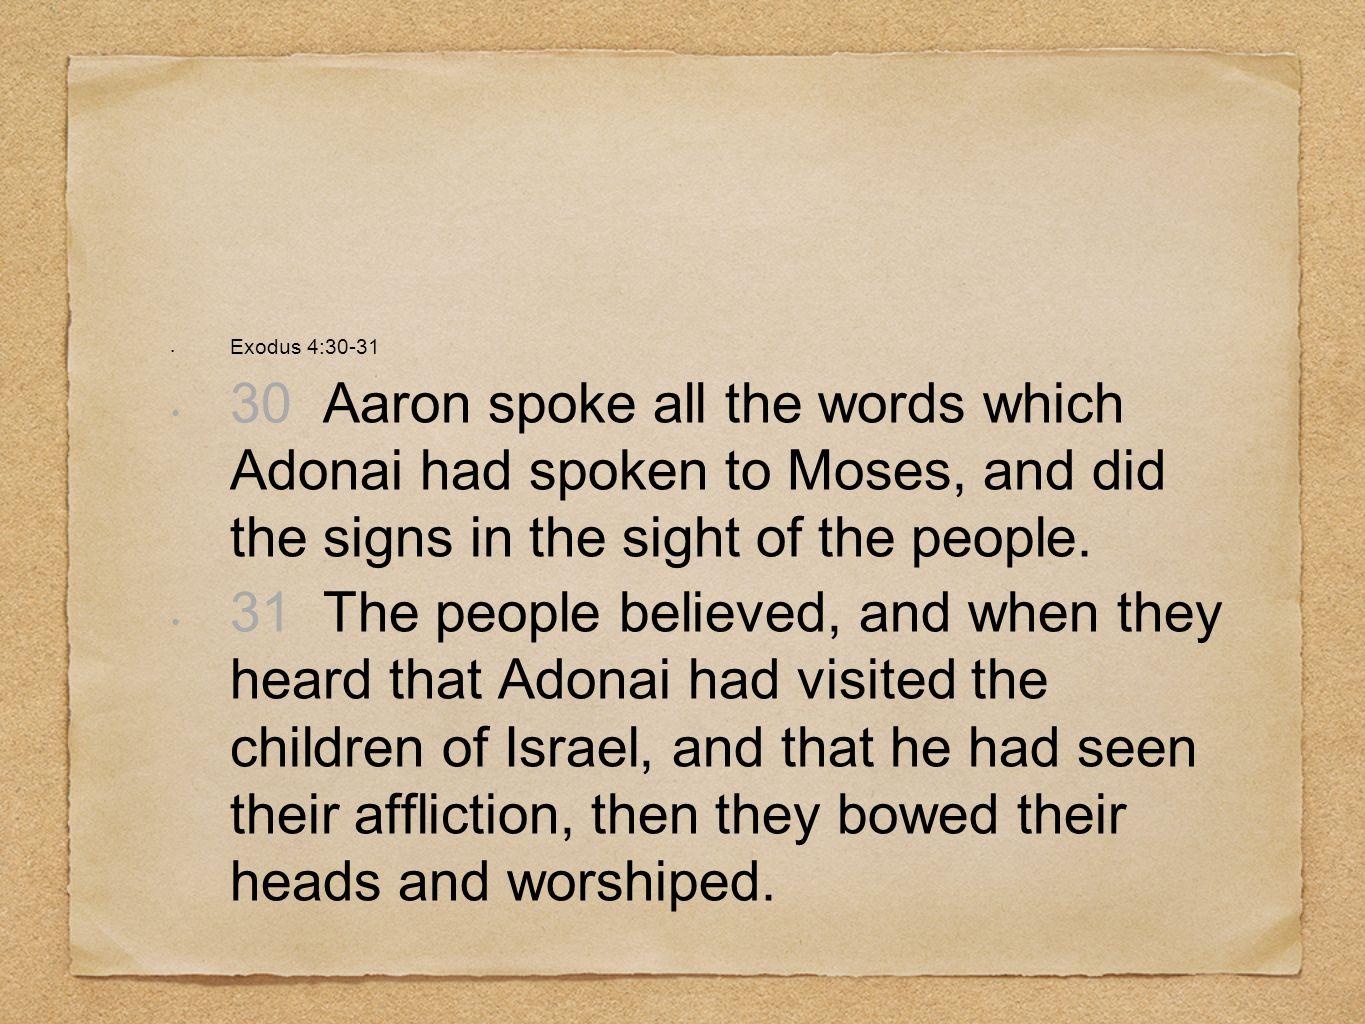 Exodus 4: Aaron spoke all the words which Adonai had spoken to Moses, and did the signs in the sight of the people.